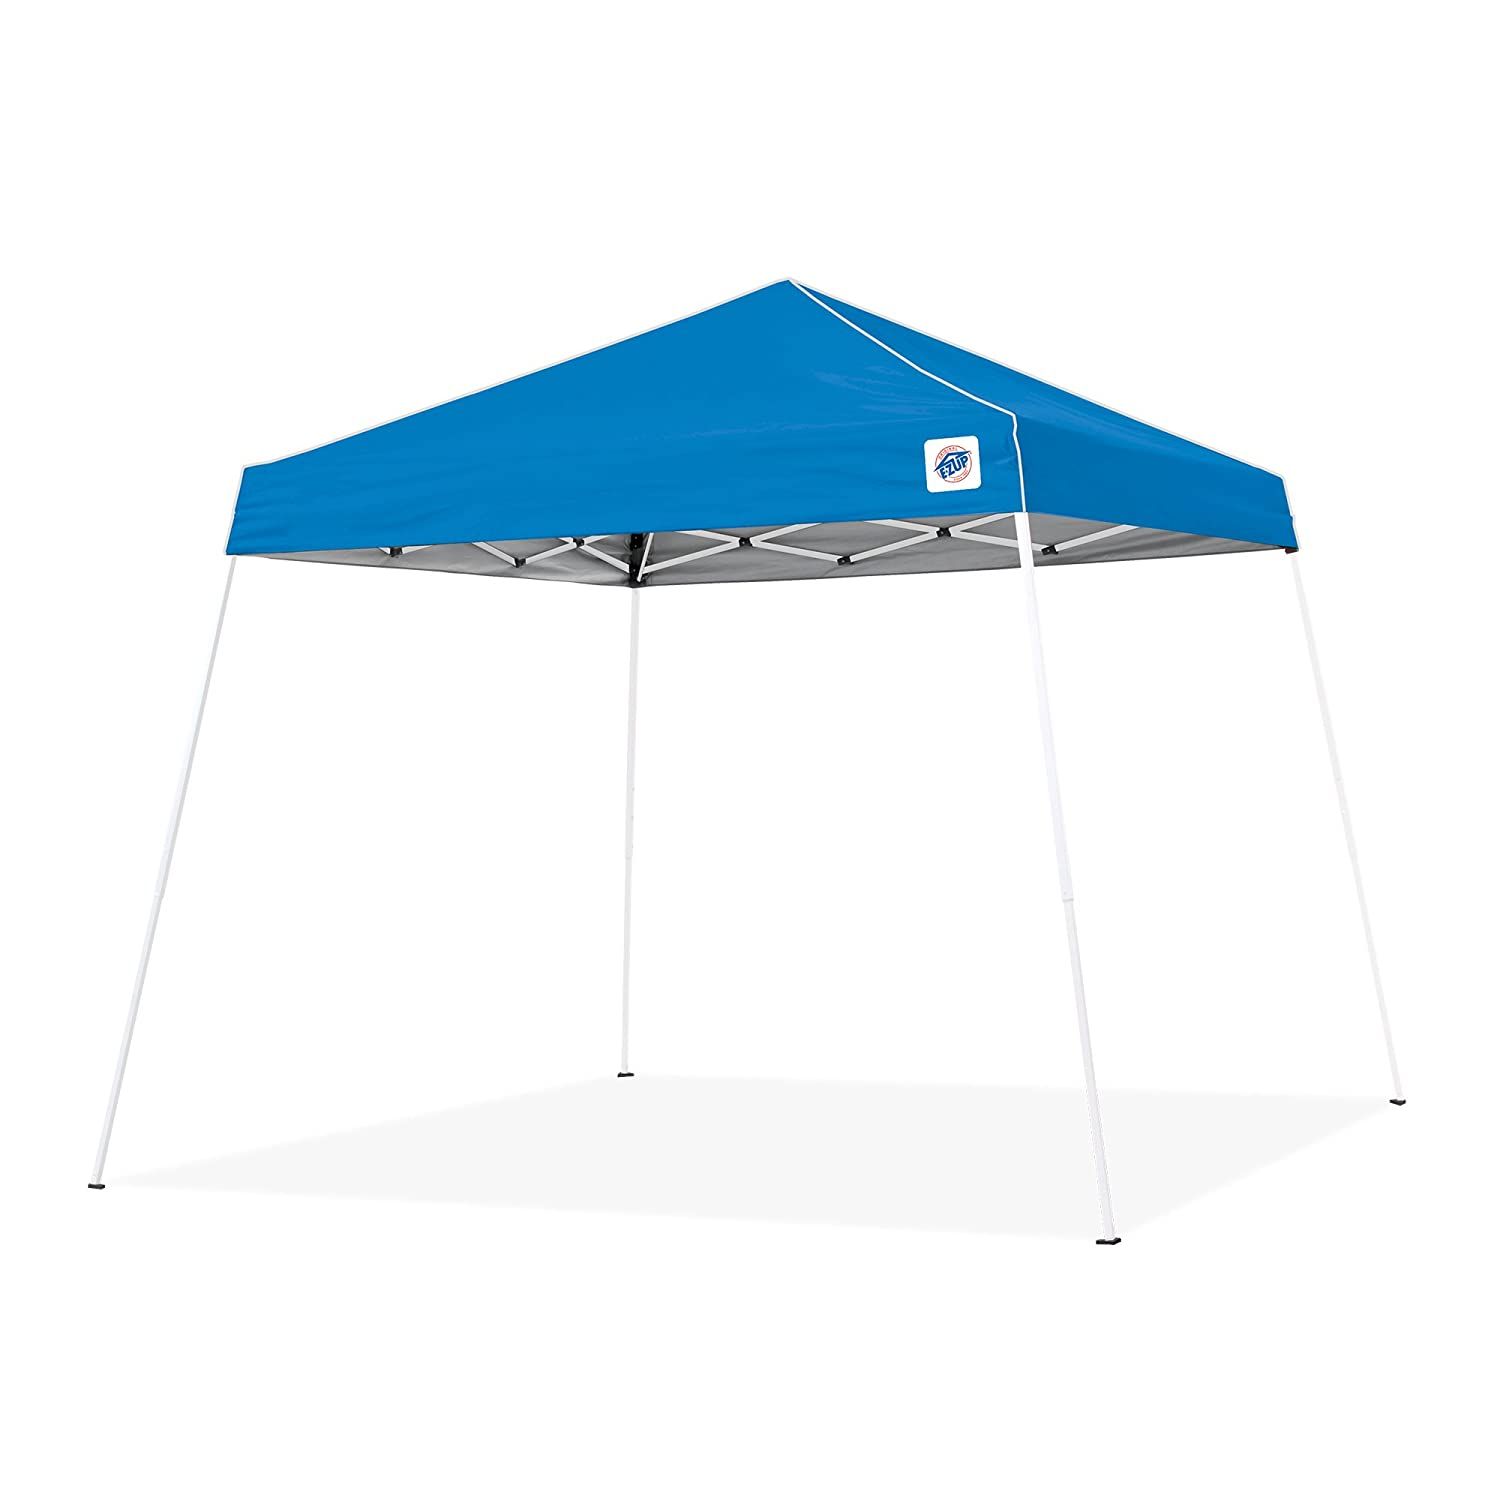 Amazon.com  E-Z UP Swift Instant Shelter Pop-Up Canopy 12 x 12 ft Blue  Garden u0026 Outdoor  sc 1 st  Amazon.com & Amazon.com : E-Z UP Swift Instant Shelter Pop-Up Canopy 12 x 12 ...